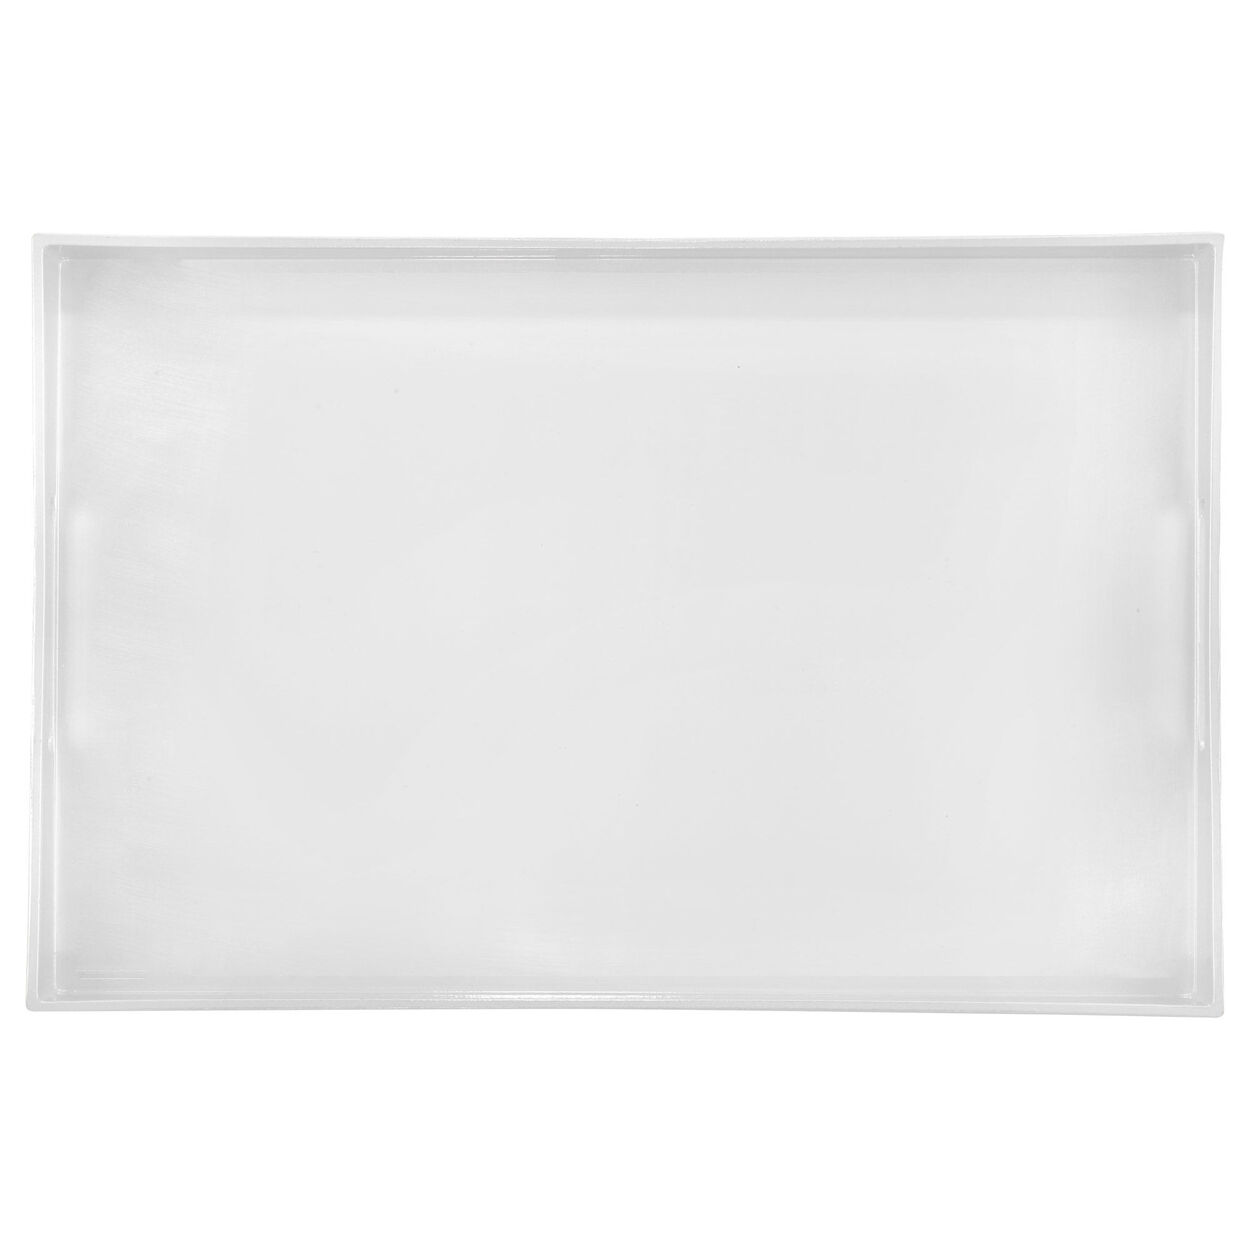 Plastic Serving Tray with Handles